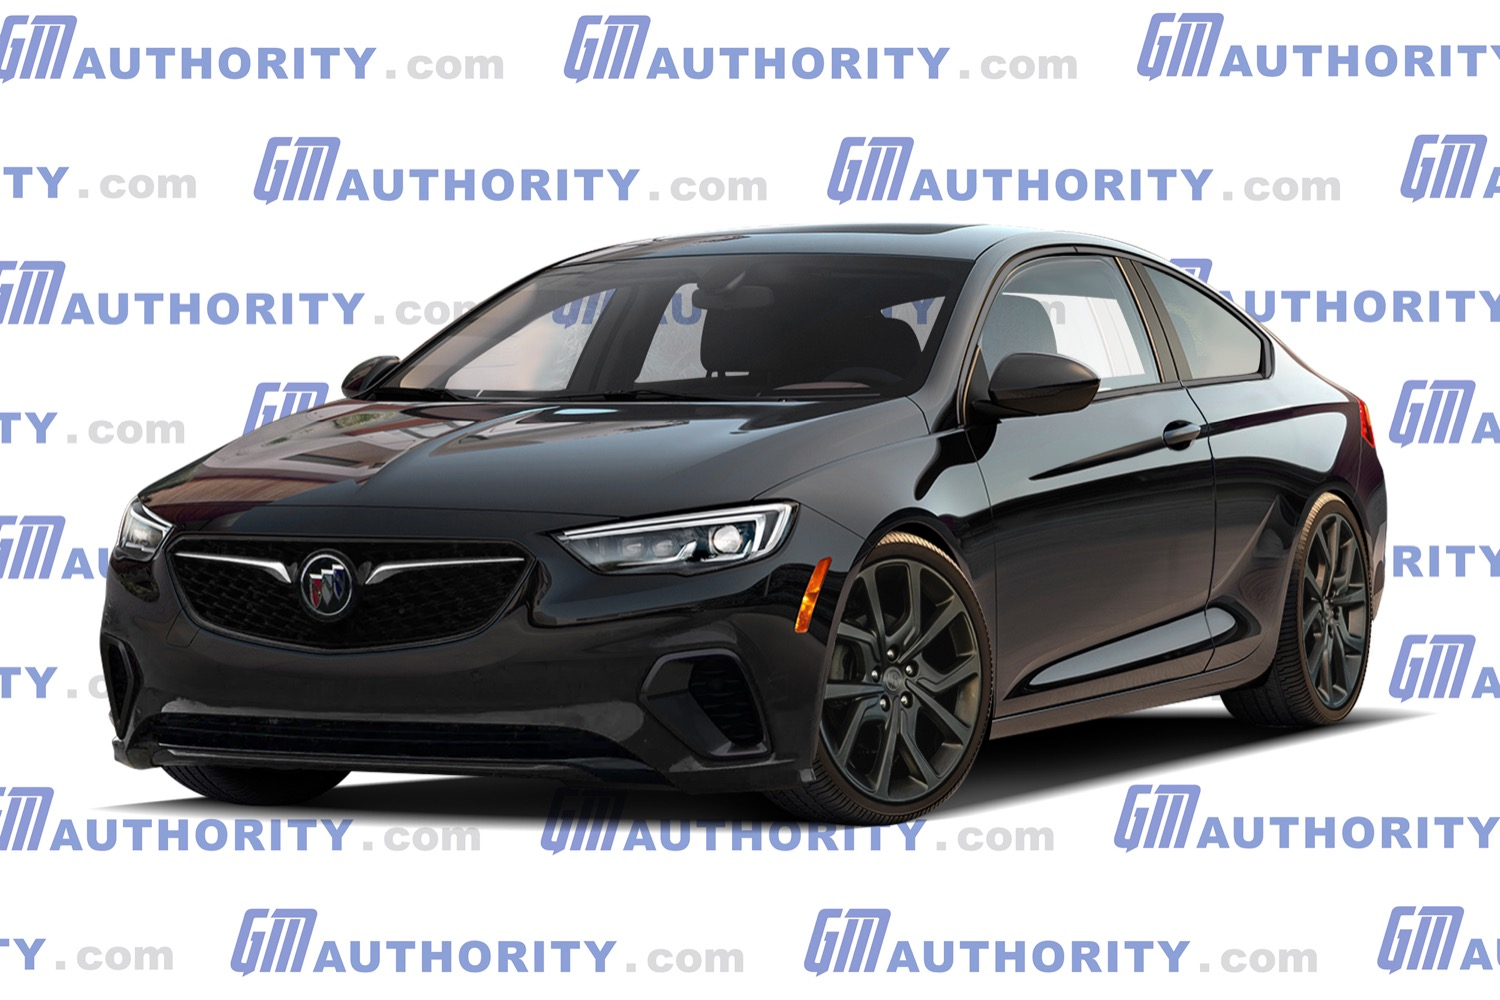 Modern Buick Regal Gnx Rendered | Gm Authority 2022 Buick Regal Gs Review, Specs, Release Date